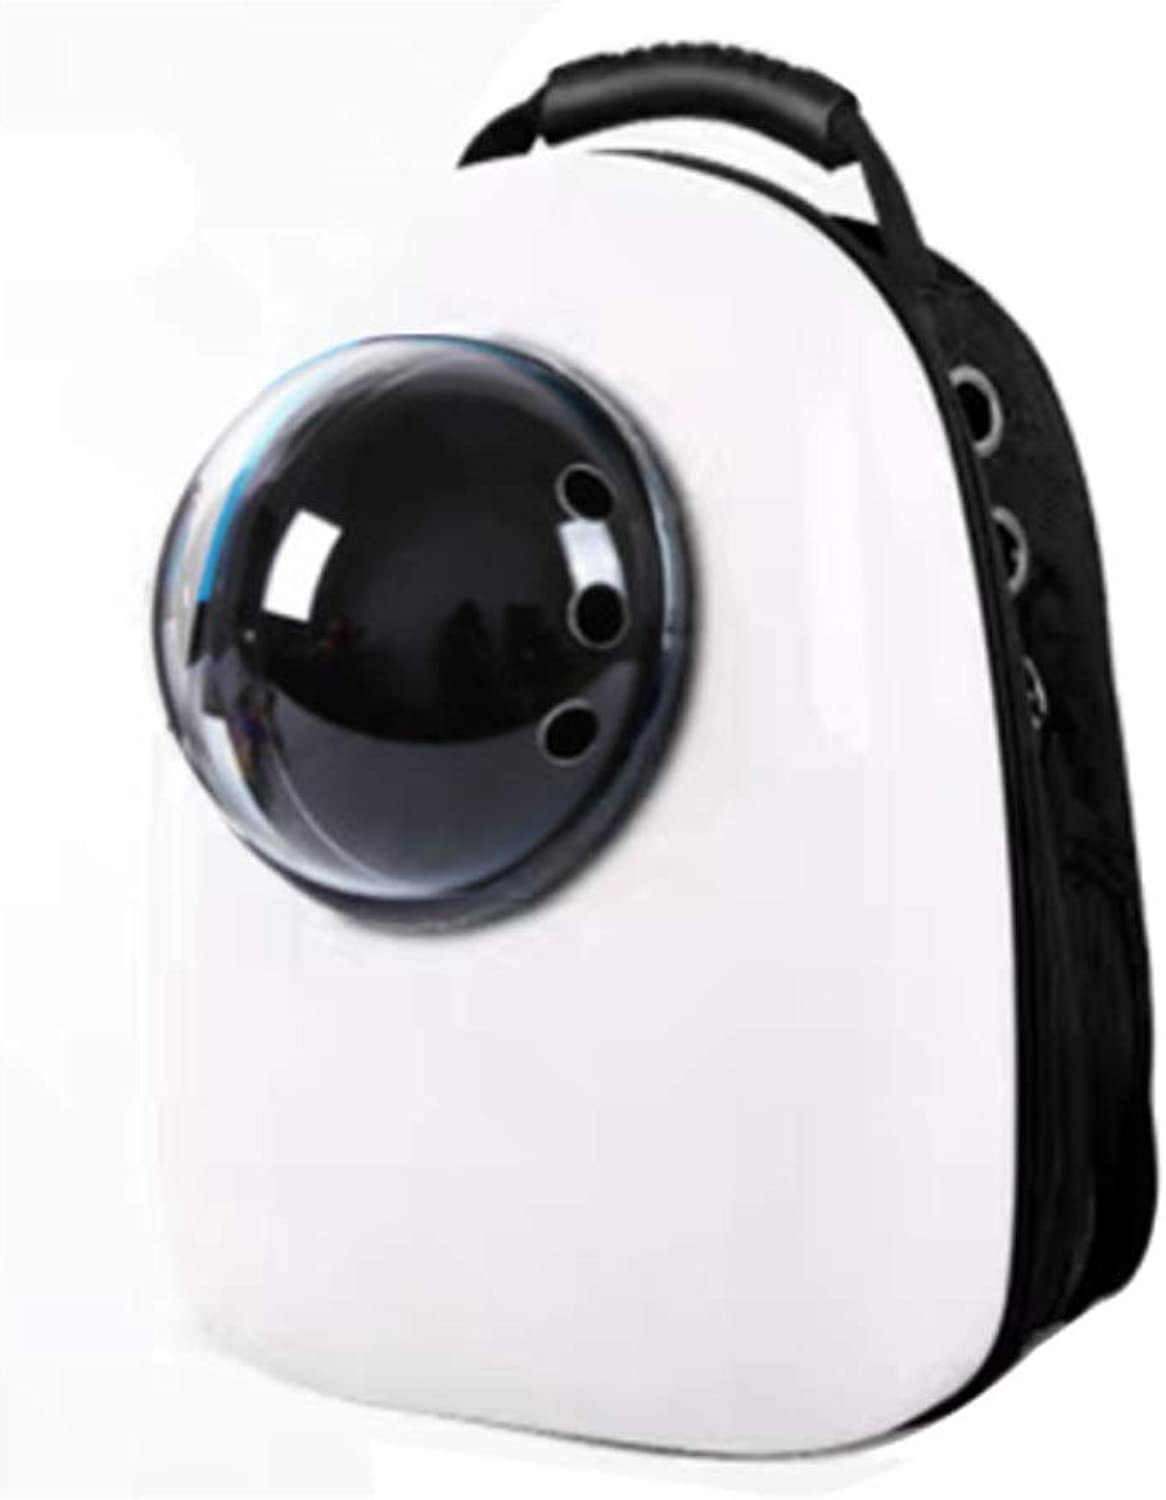 Onnear Innovative Traveler Bubble Backpack Pet Carriers for Cats And Dogs,Pet Space Capsule Carrier Backpack Waterproof Travel Pet Bed Easy Trips with Dogs and Cats (color   White)